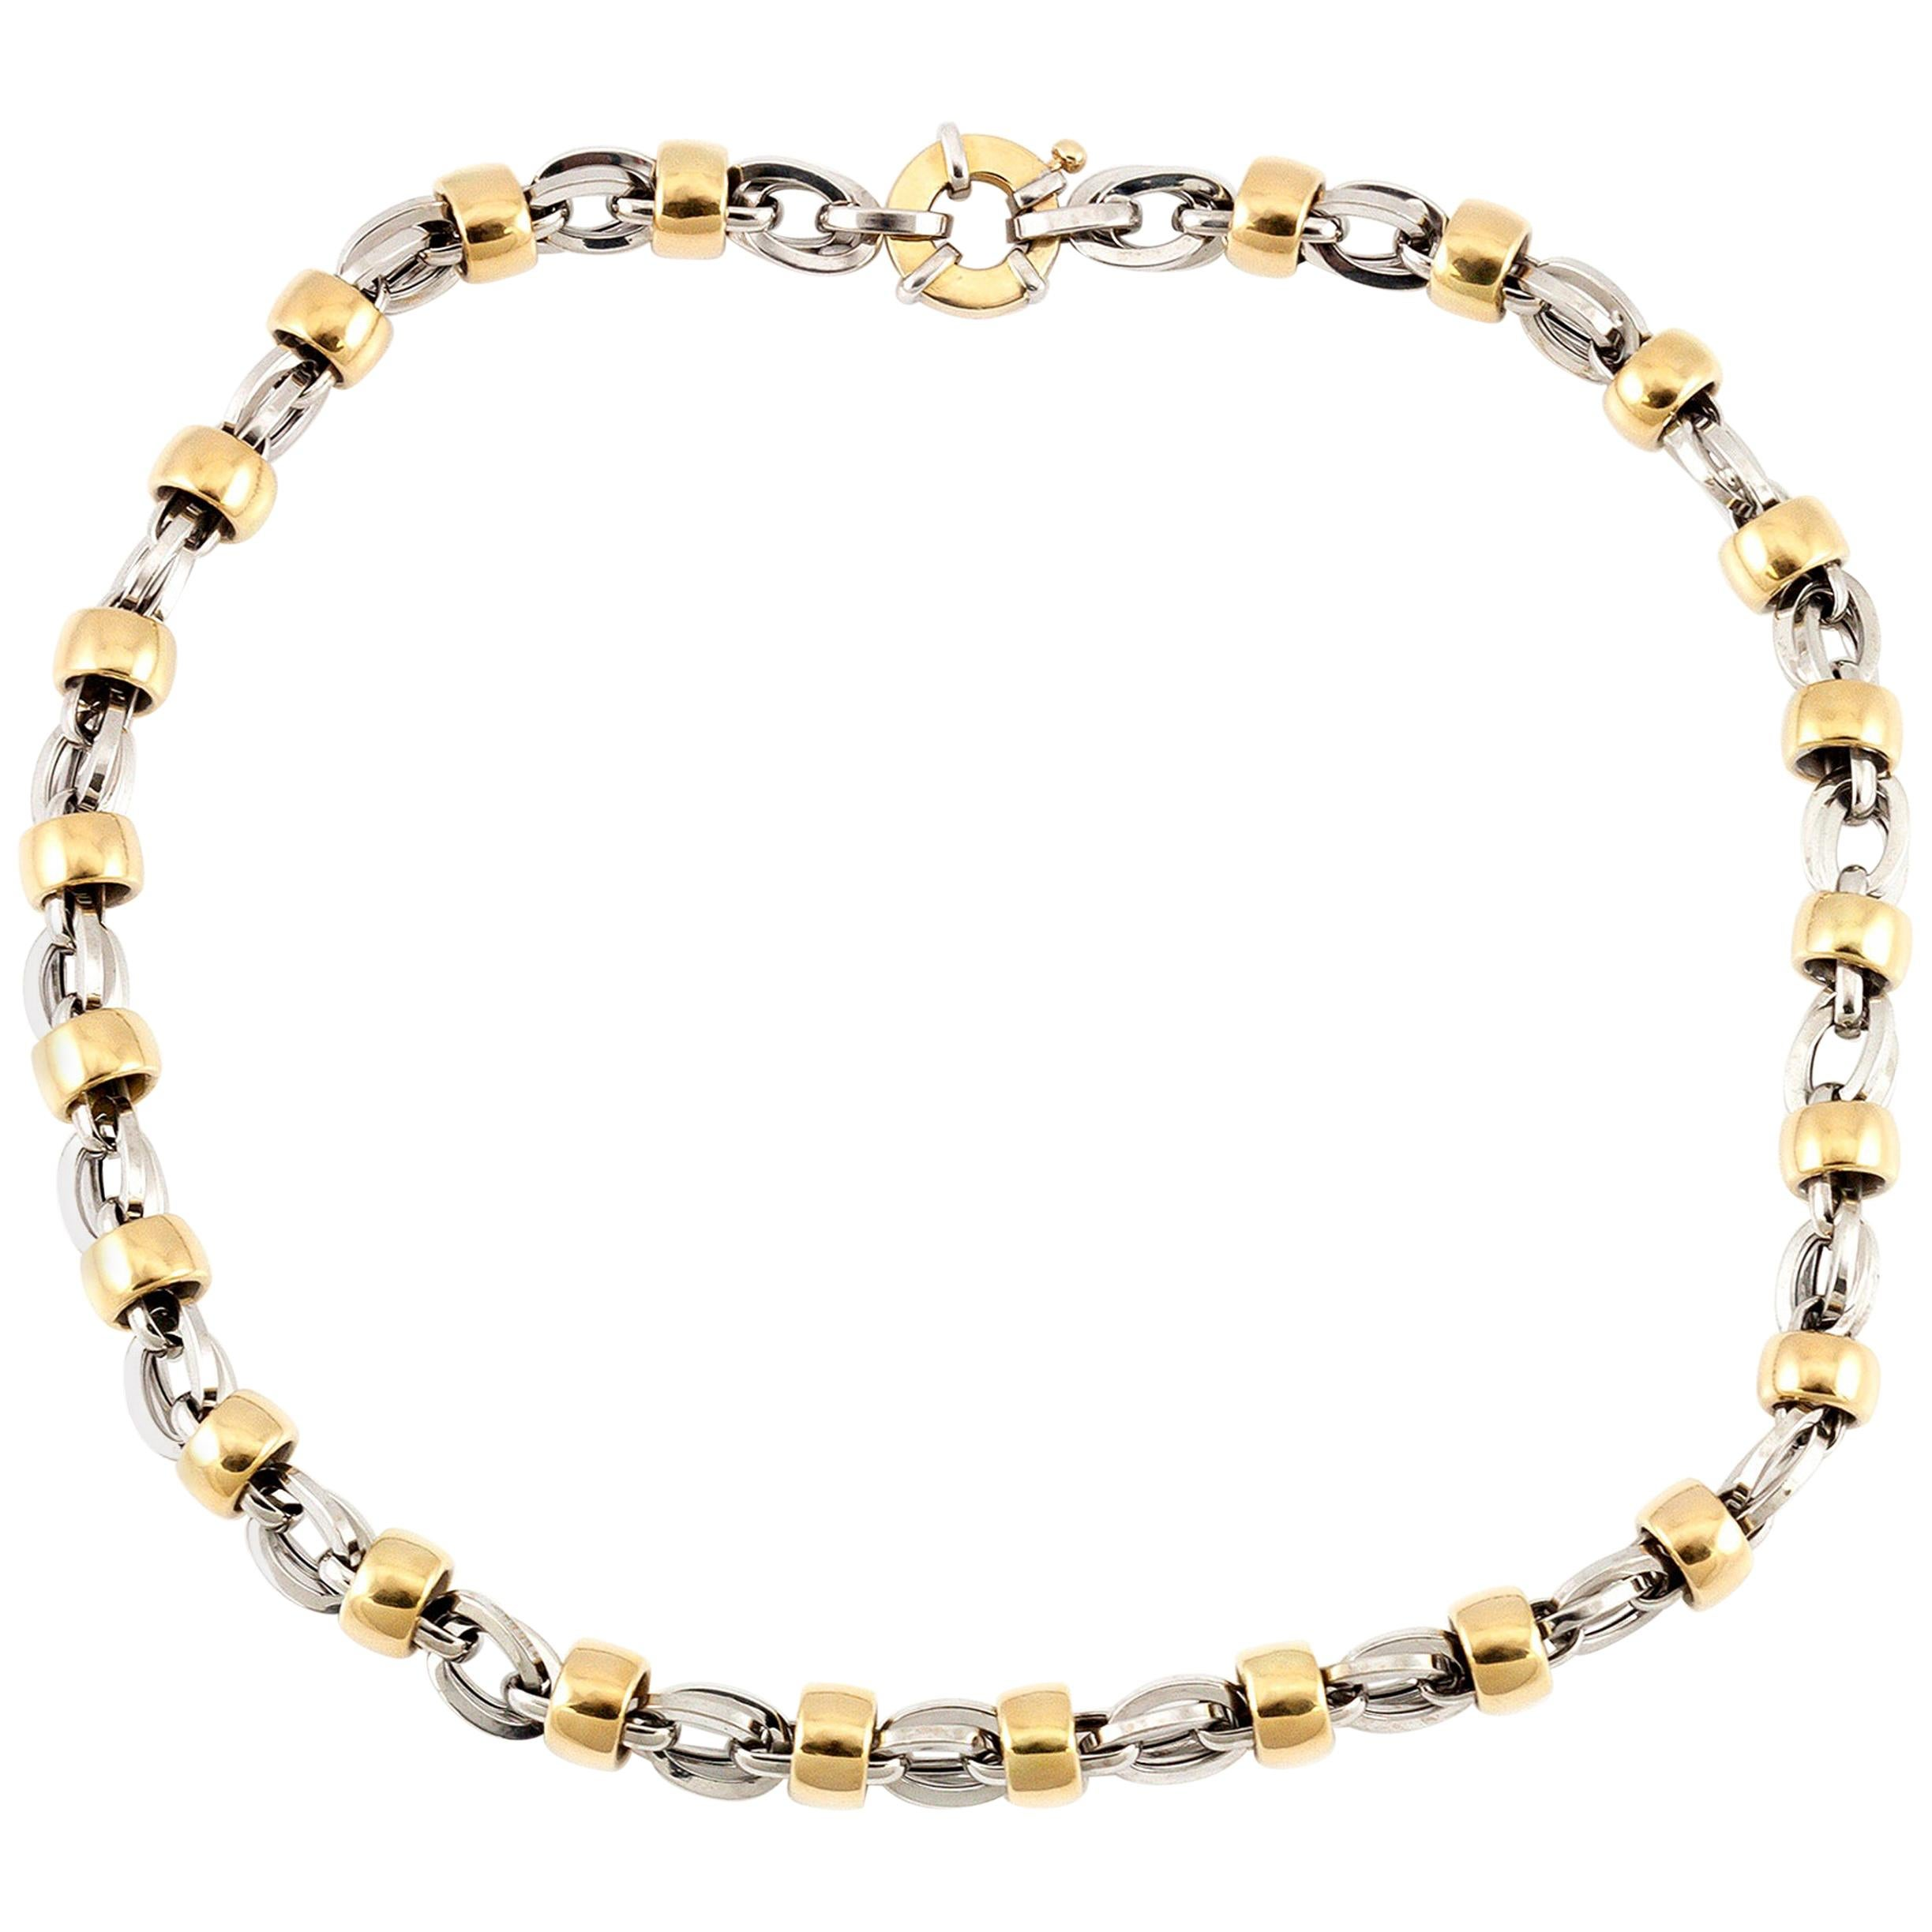 Two-Tone Gold Necklace